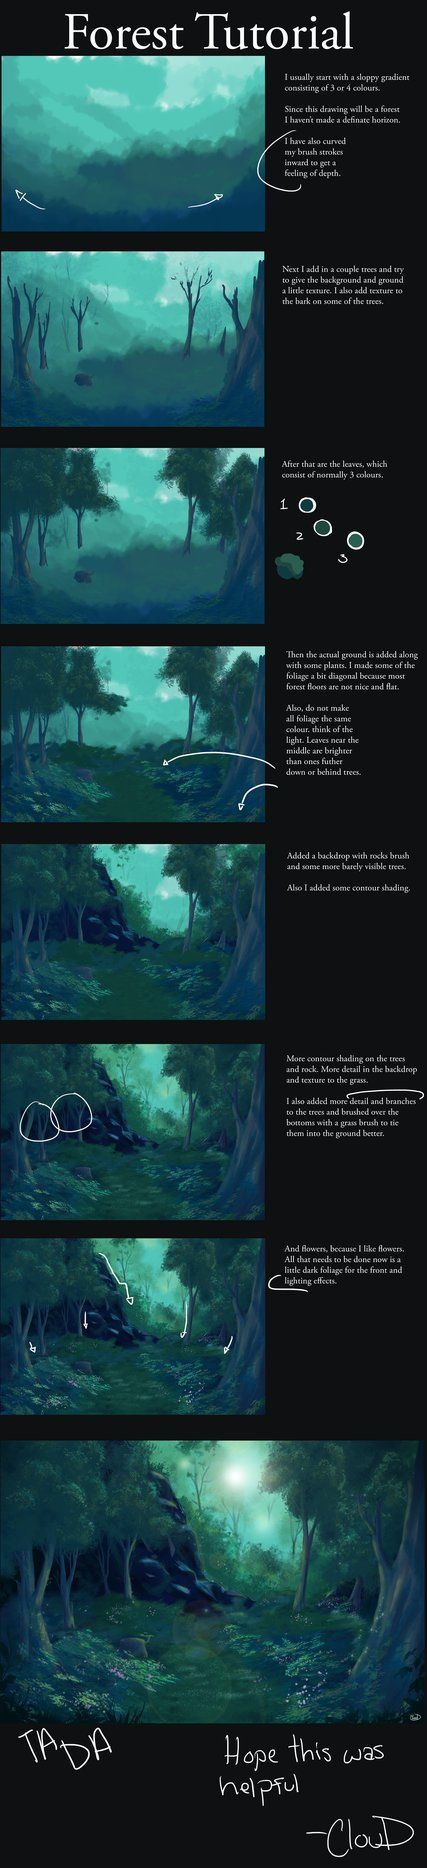 this is my first tutorial. other art aniplay.deviantart.com/art/Blu… aniplay.deviantart.com/art/For… aniplay.deviantart.com/art/Sto… aniplay.deviantart.com/art/For…